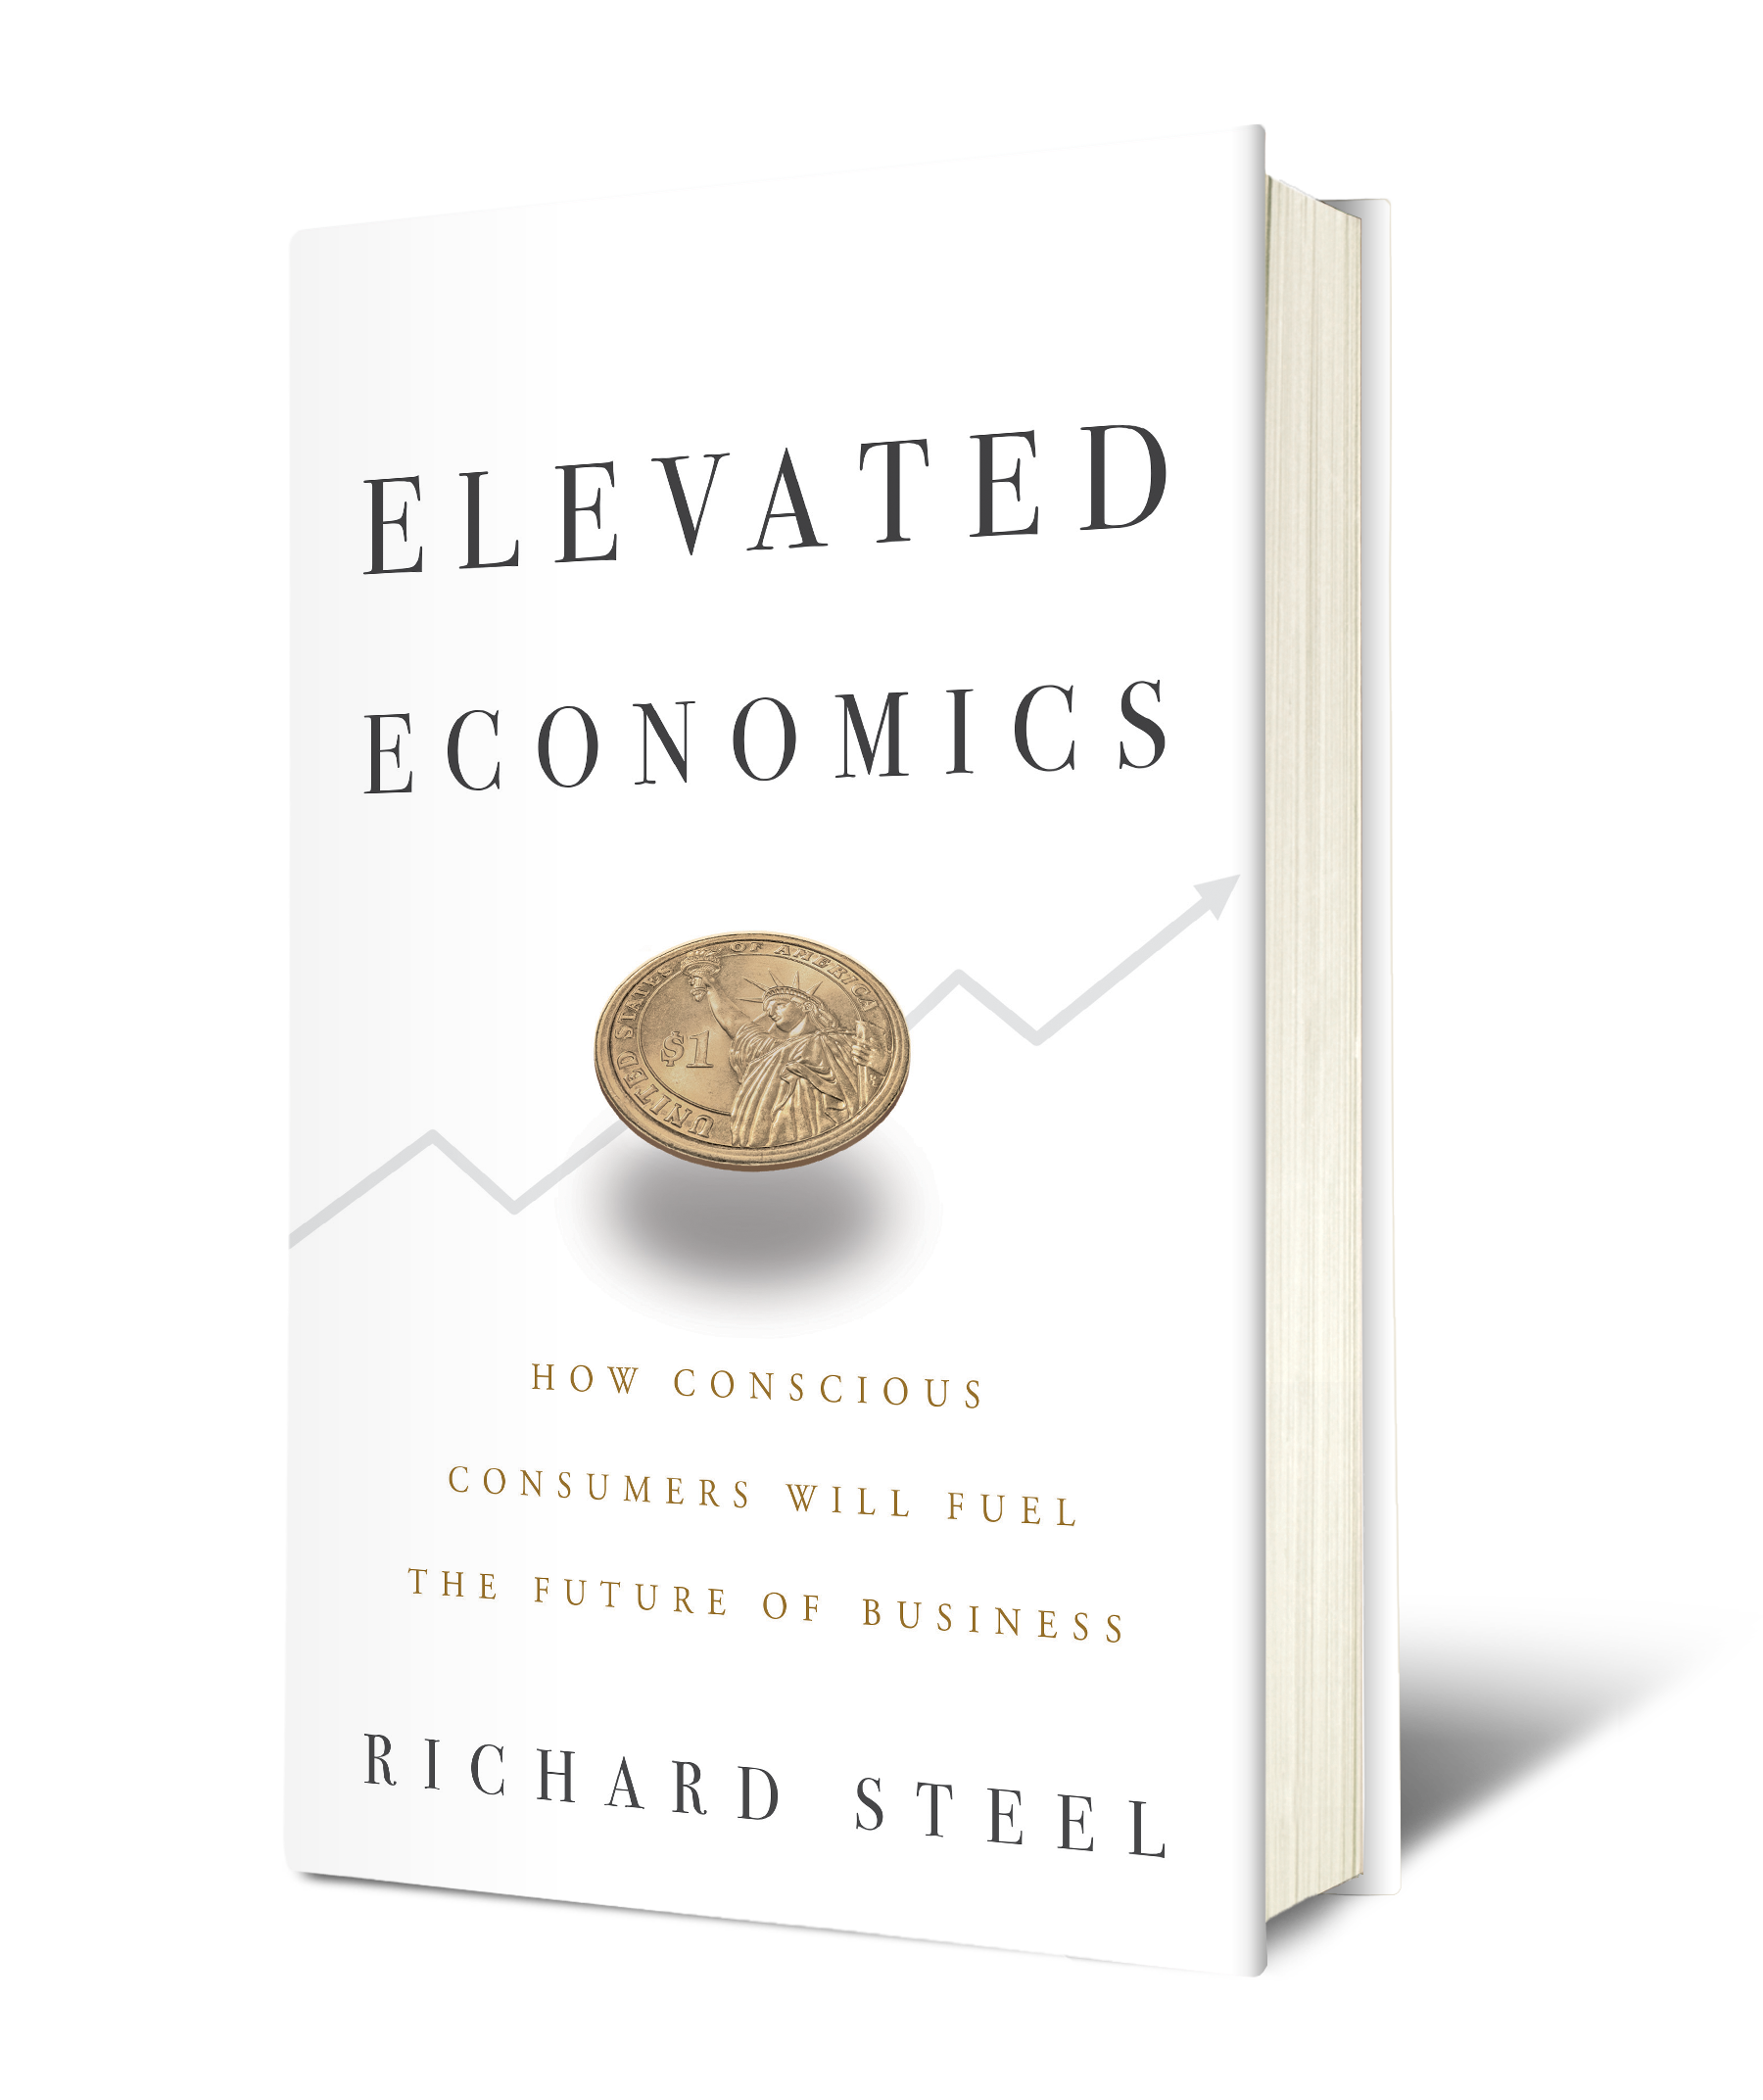 Elevated Economics Book Image